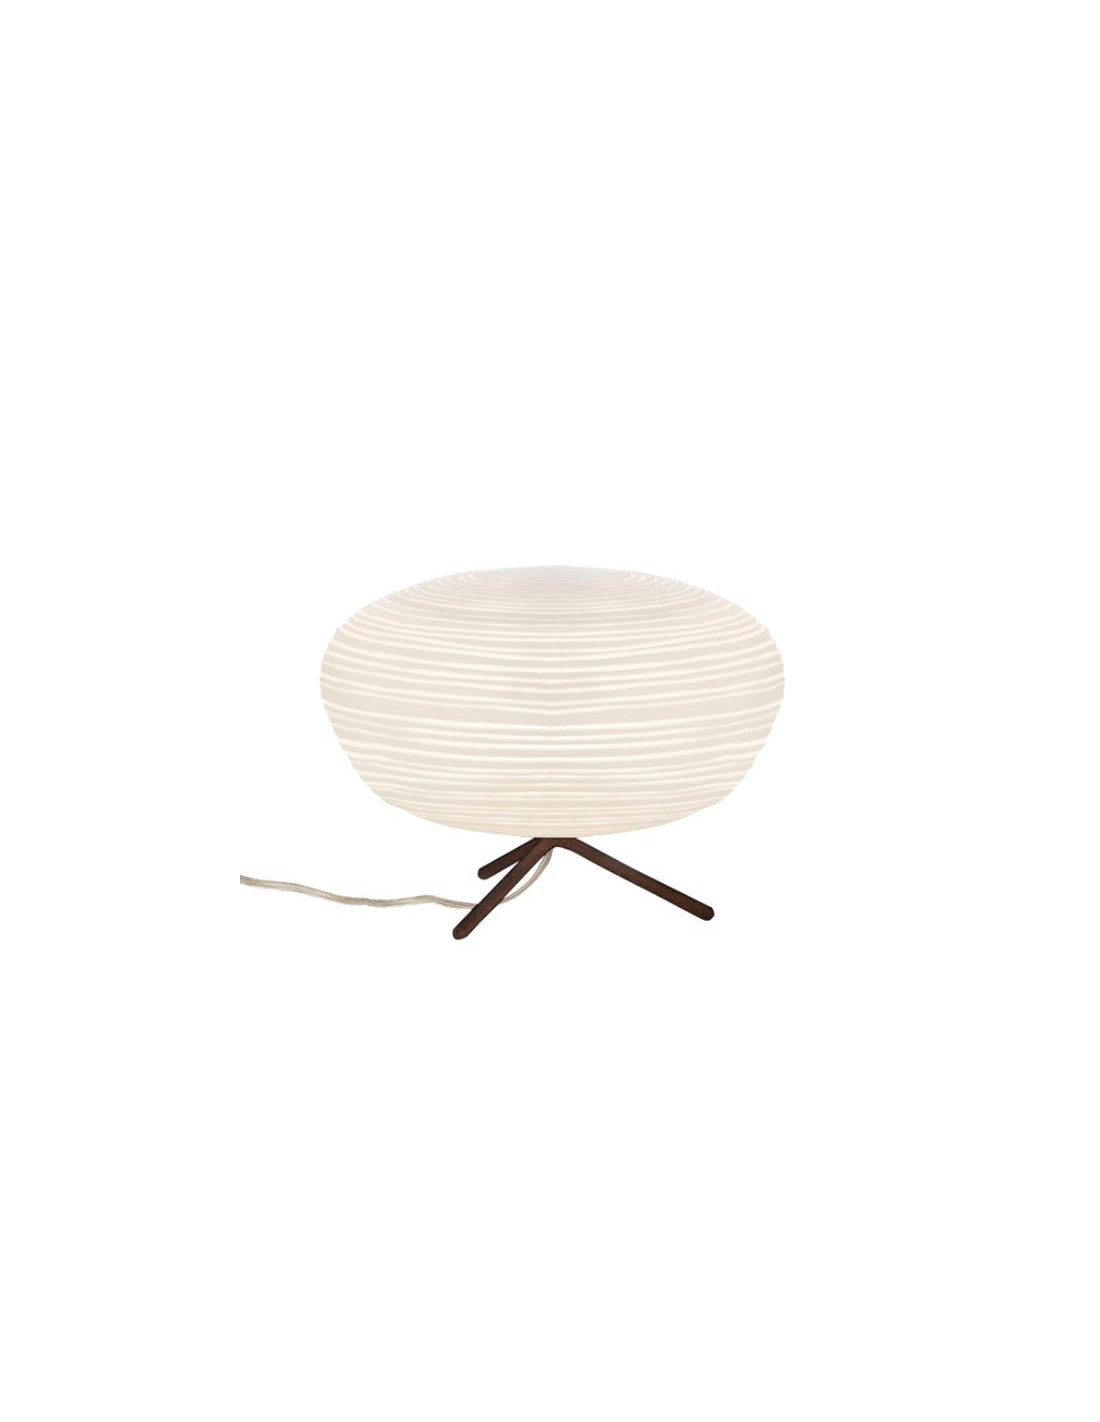 Lampe de table Rituals 2 foscarini